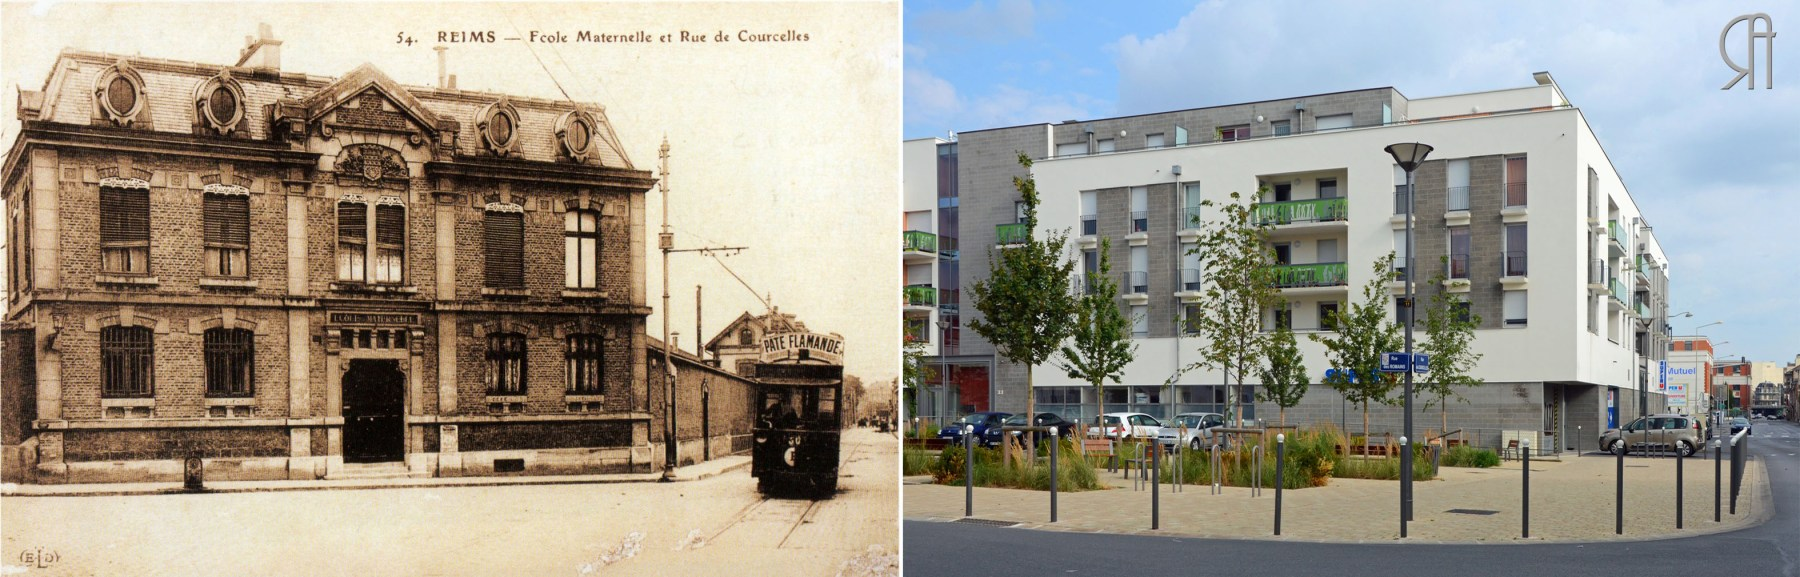 ecole-courcelles-ra